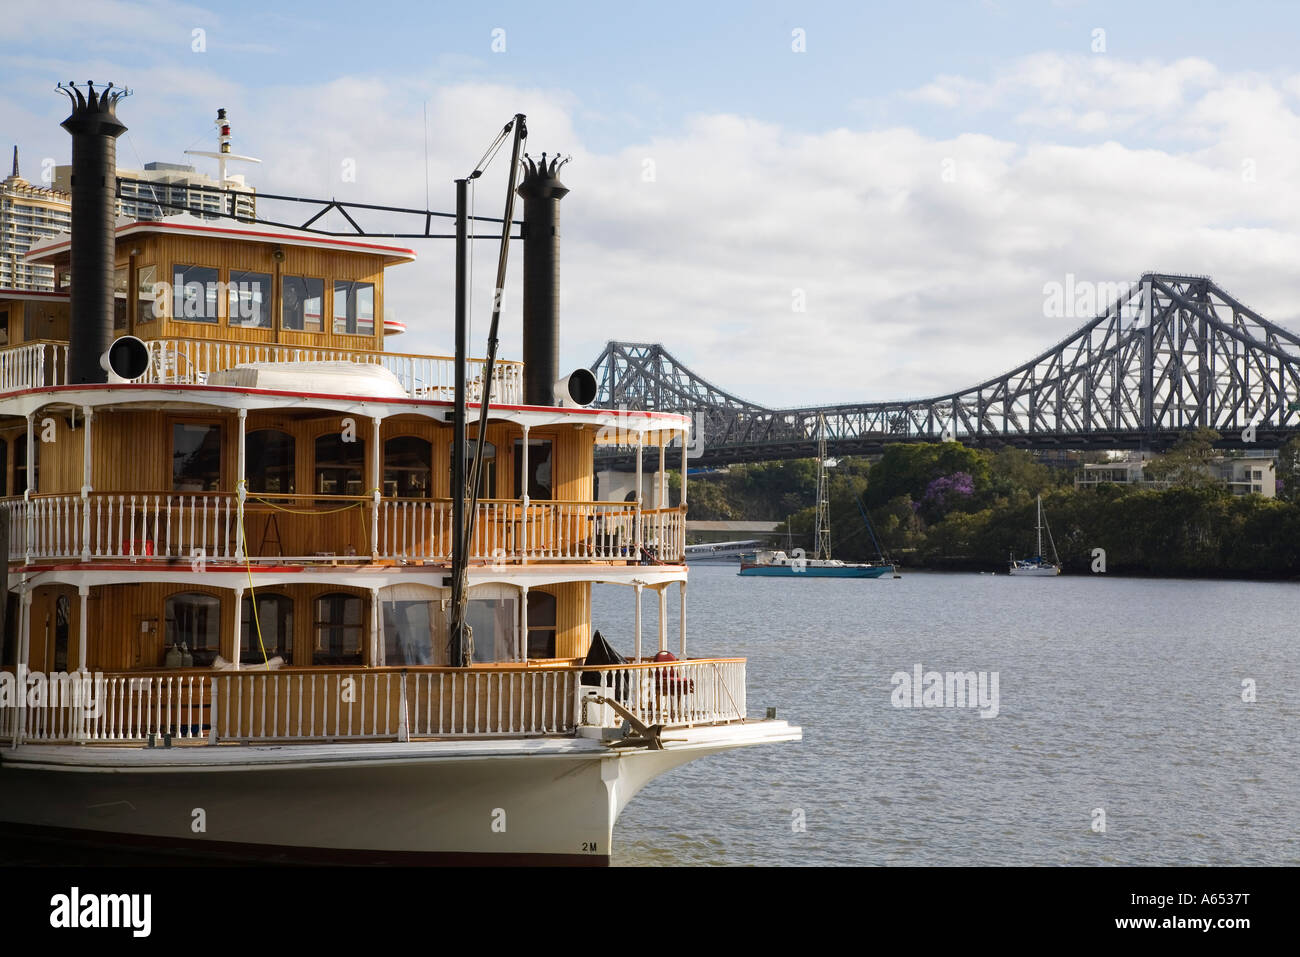 one of a number of old paddle wheelers on the brisbane river used